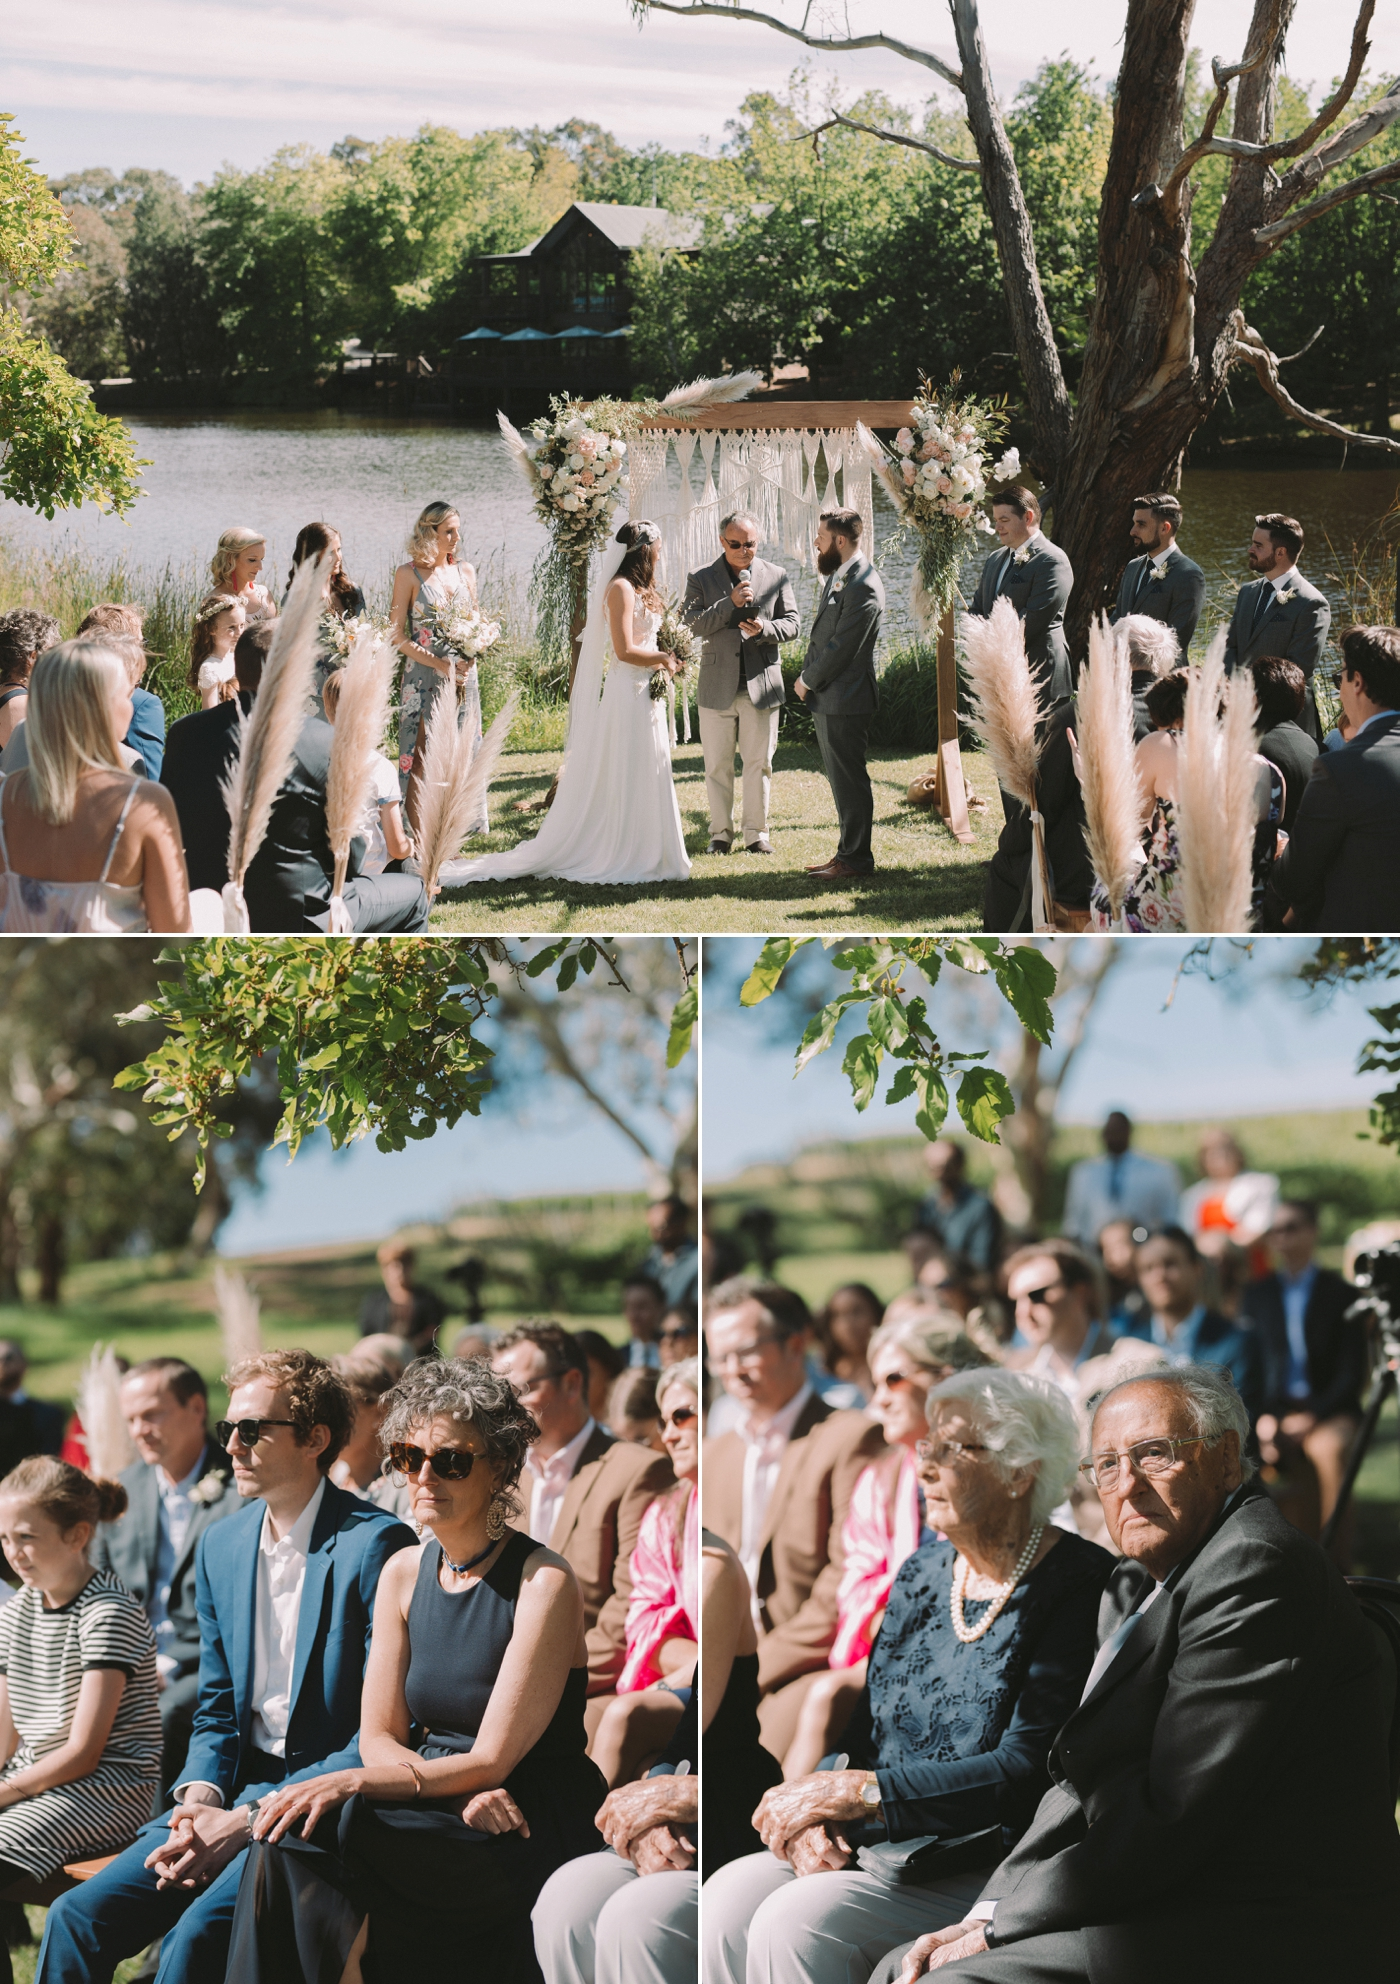 Maddy & Wes - K1 by Geoff Hardy Wedding - Adelaide Wedding Photographer - Natural wedding photography in Adelaide - Katherine Schultz_0030.jpg